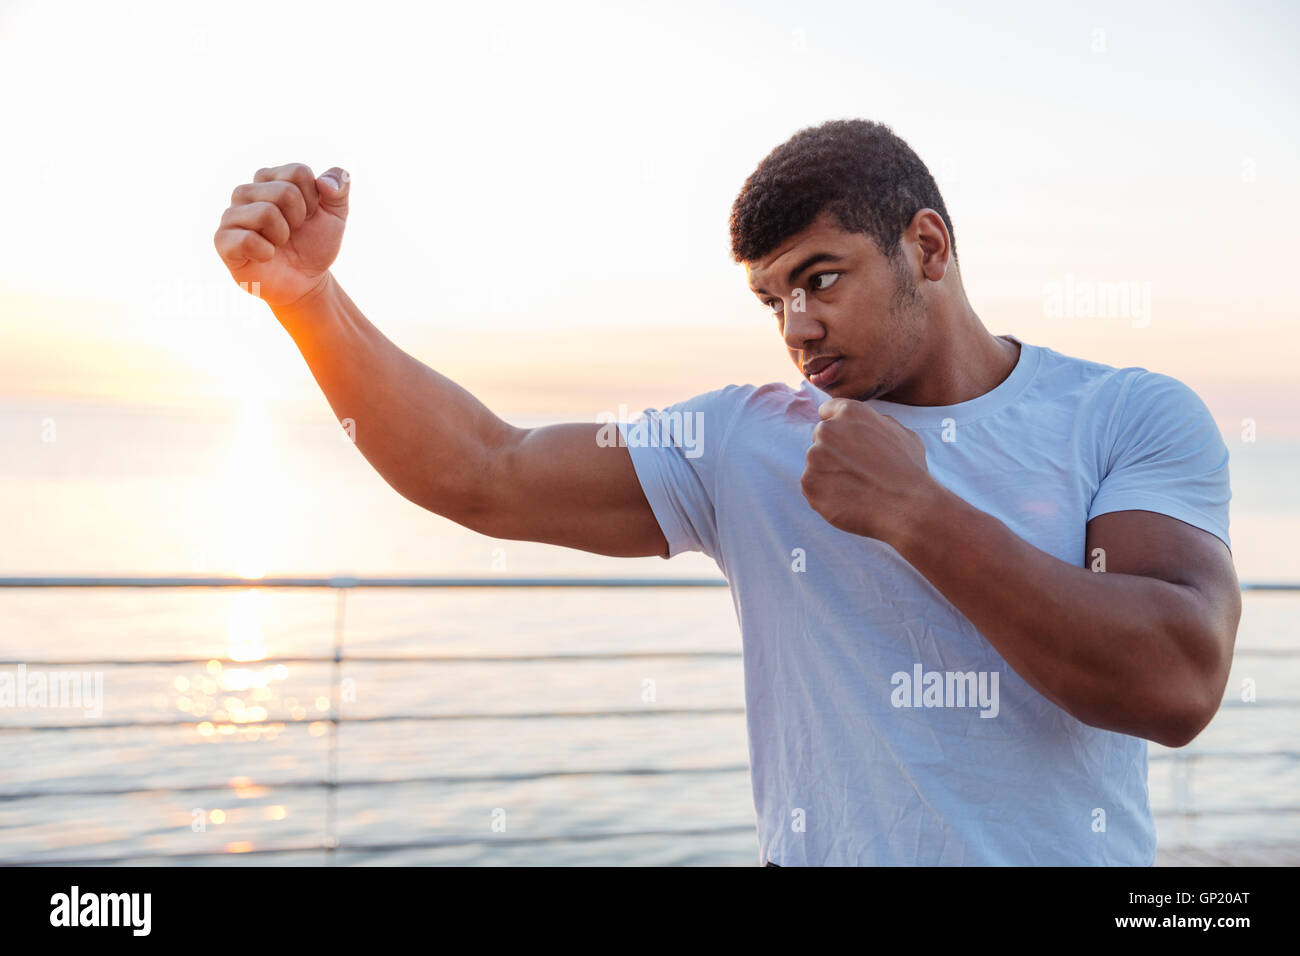 Concentrated african american young man boxer working out outdoors on sunrise - Stock Image